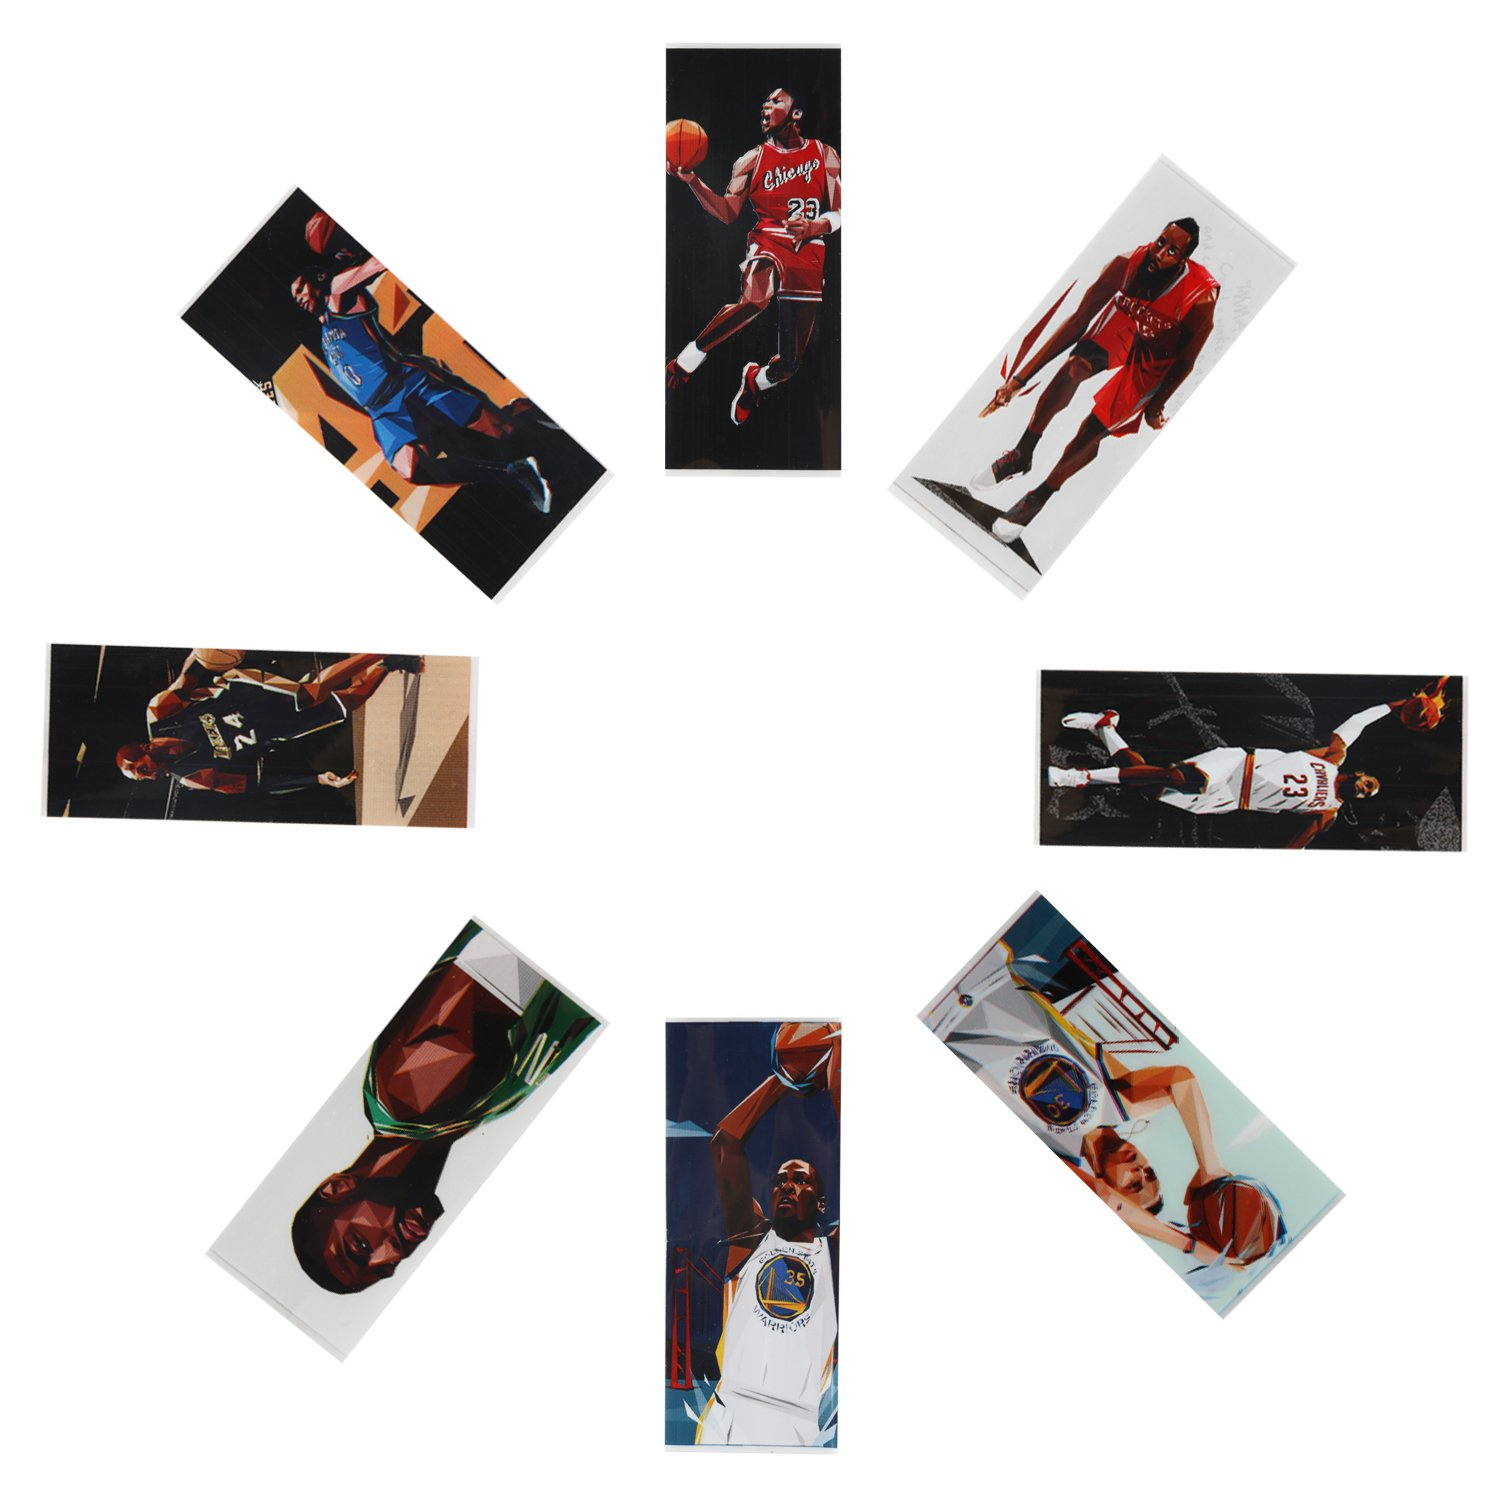 80-Packs Pre-Cut 18650 Battery Wraps Cover NBA Series Protective Sleeve Heat Shrink Wrap - 8 Styles FogsLord